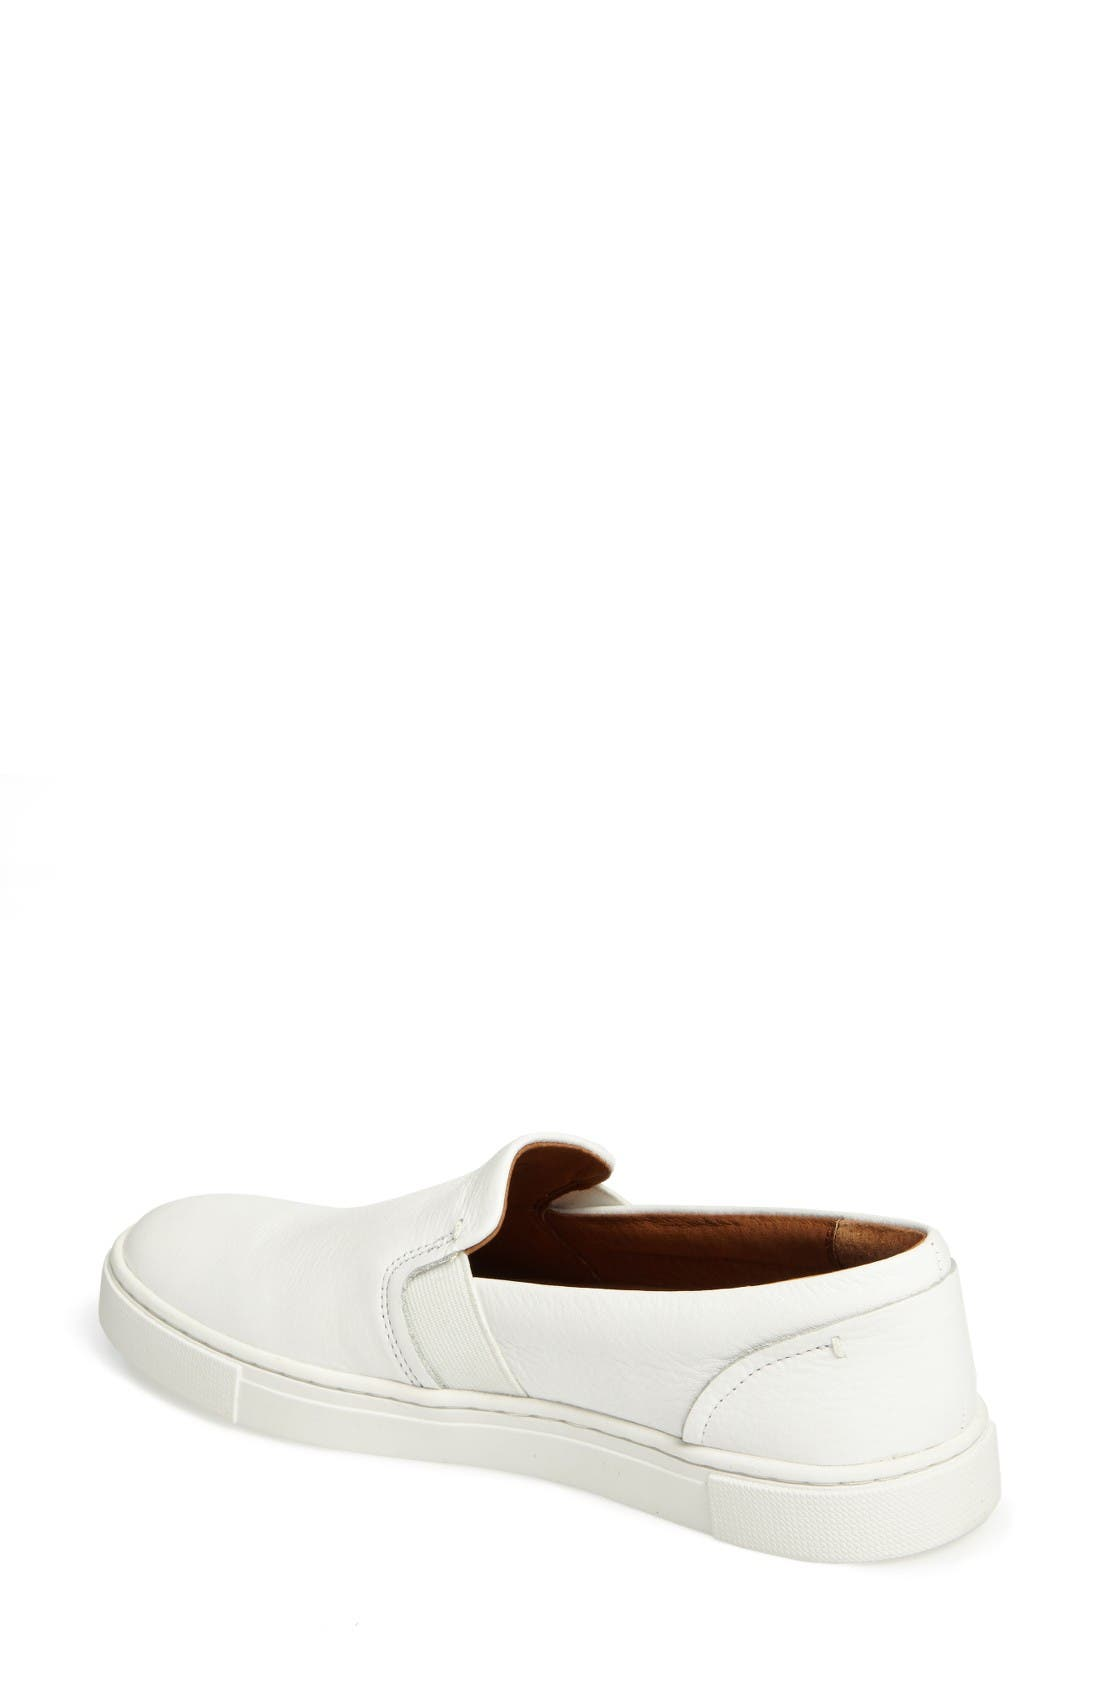 Alternate Image 2  - Frye Ivy Slip-On Sneaker (Women)